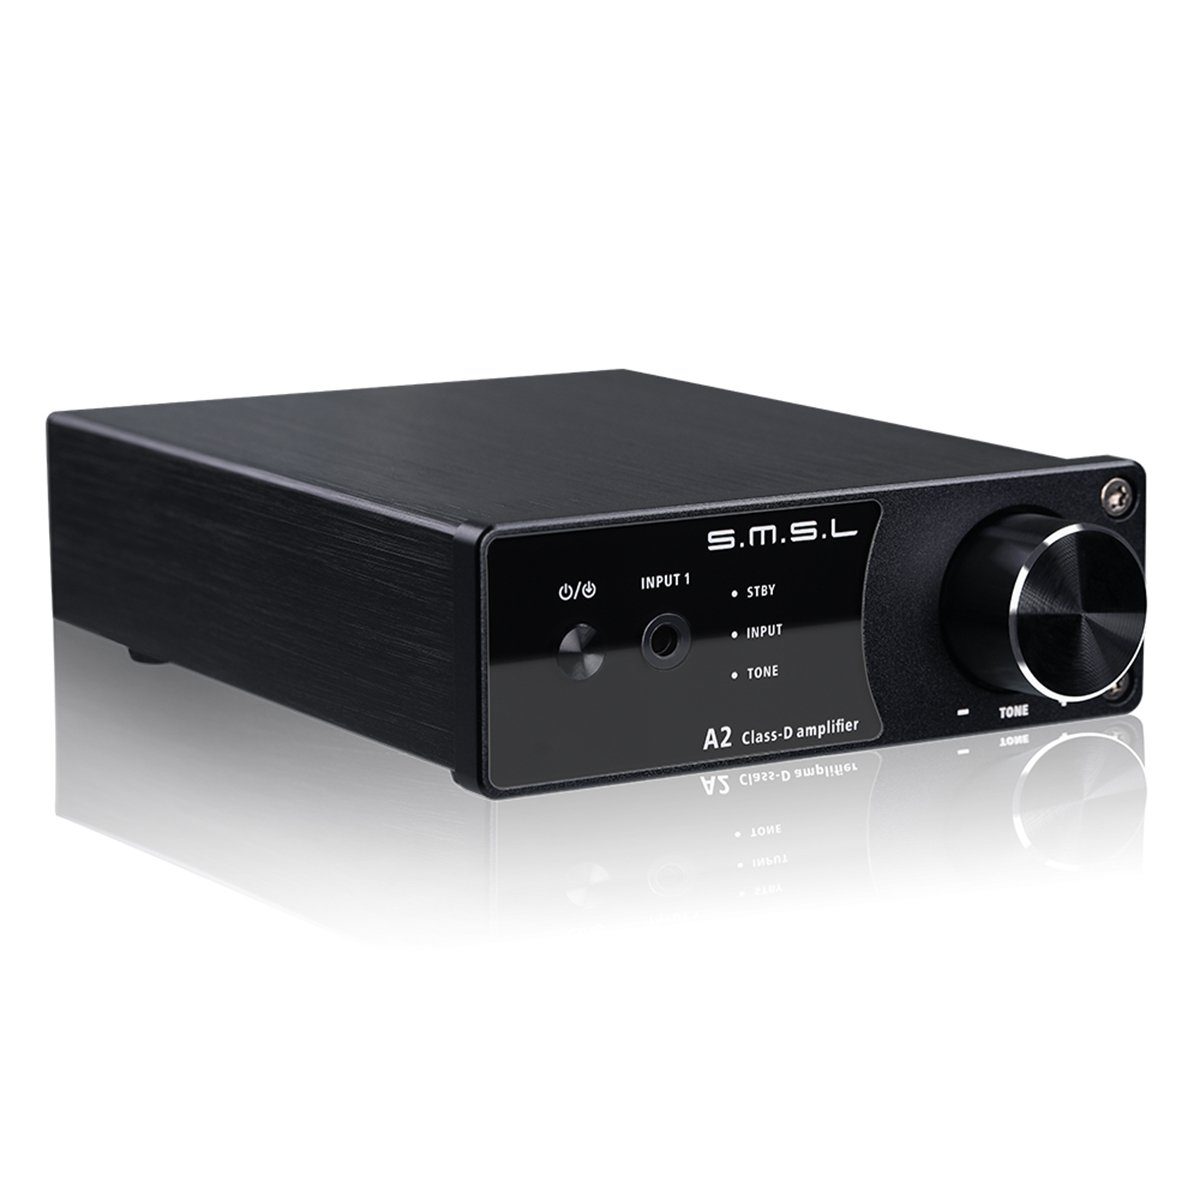 VMV SMSL A2 HiFi Audio Stereo Receiver Class D Digital Amplifier with Subwoofer 40Wx2 Black